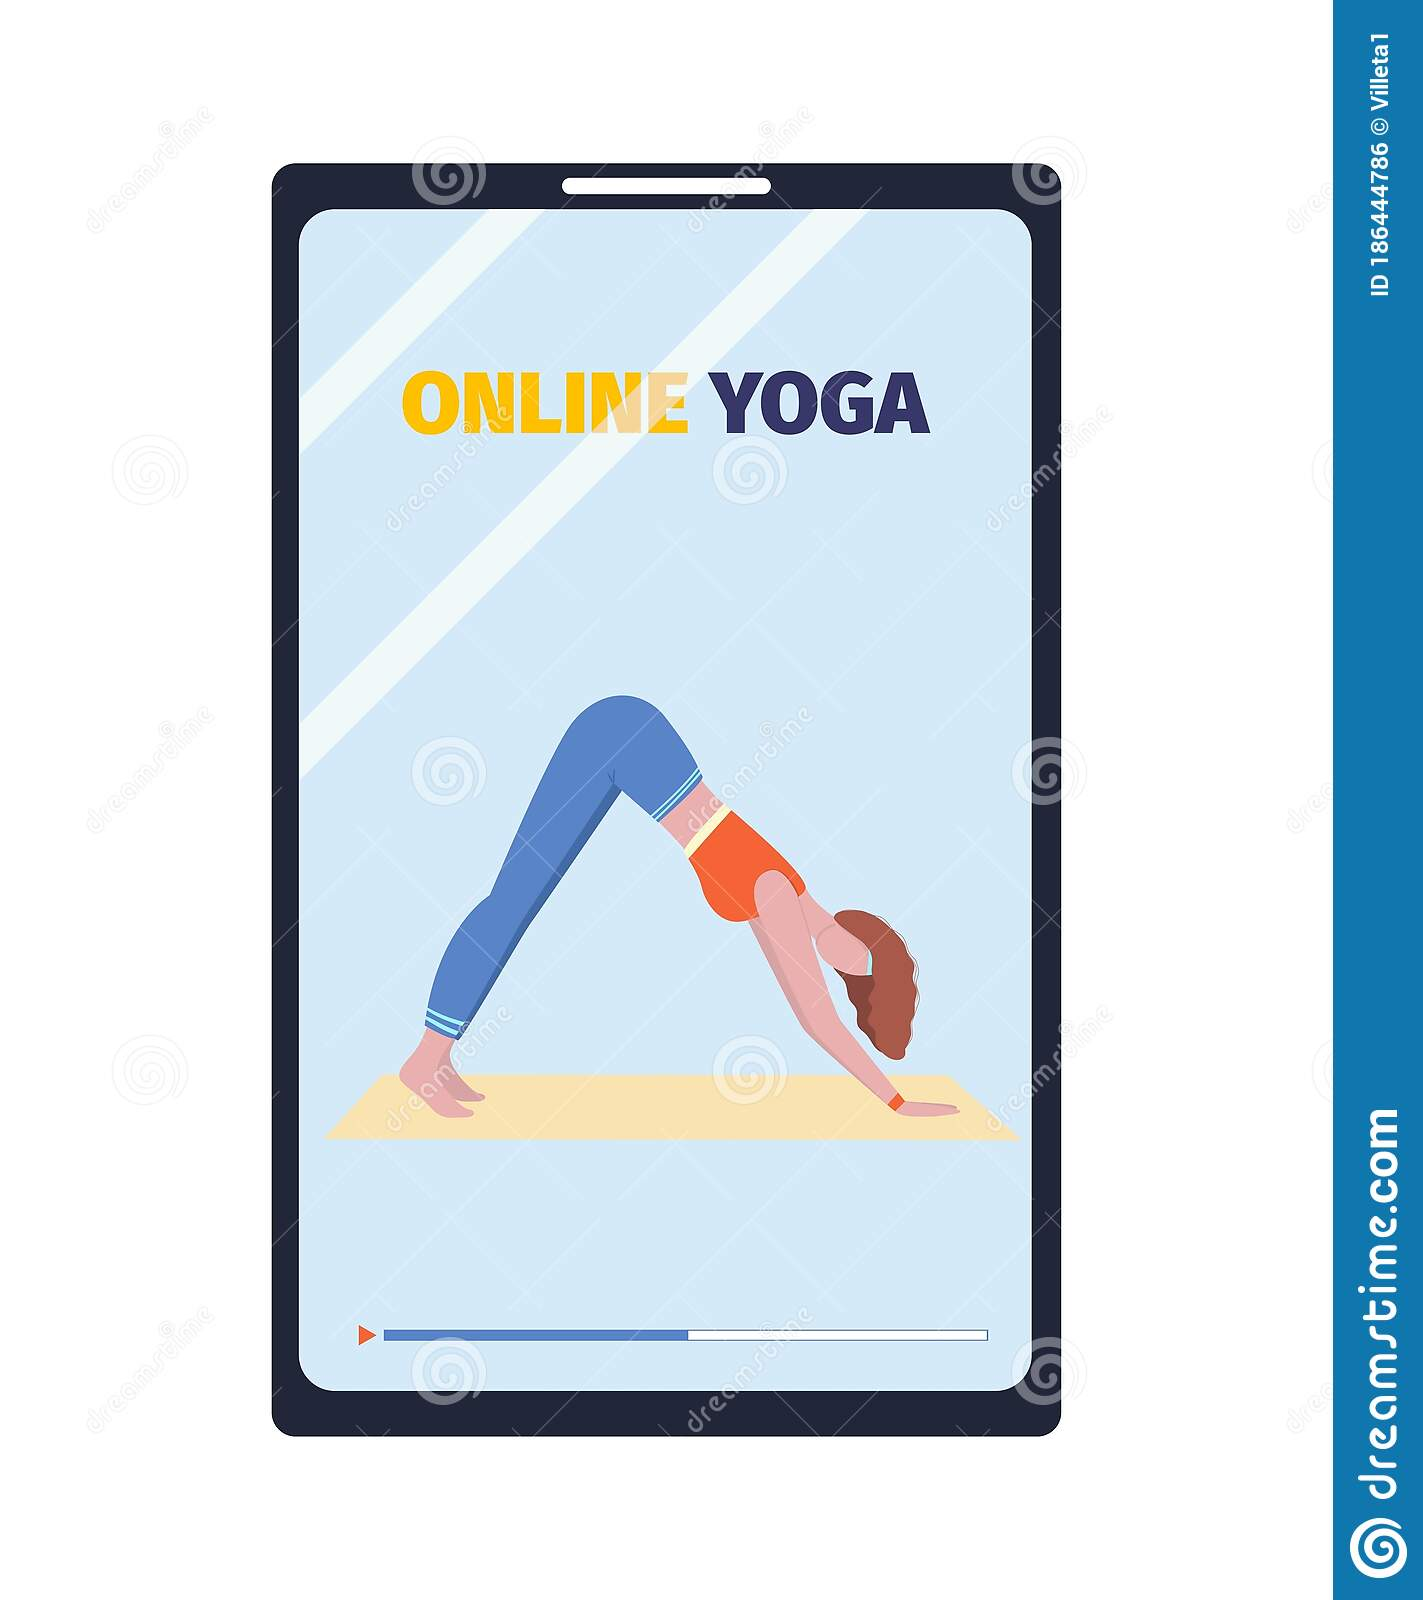 Online Yoga Classes In A Smartphone Fitness From Home Concept Vector Design For Icon Poster Banner Stock Vector Illustration Of Banner Illustration 186444786